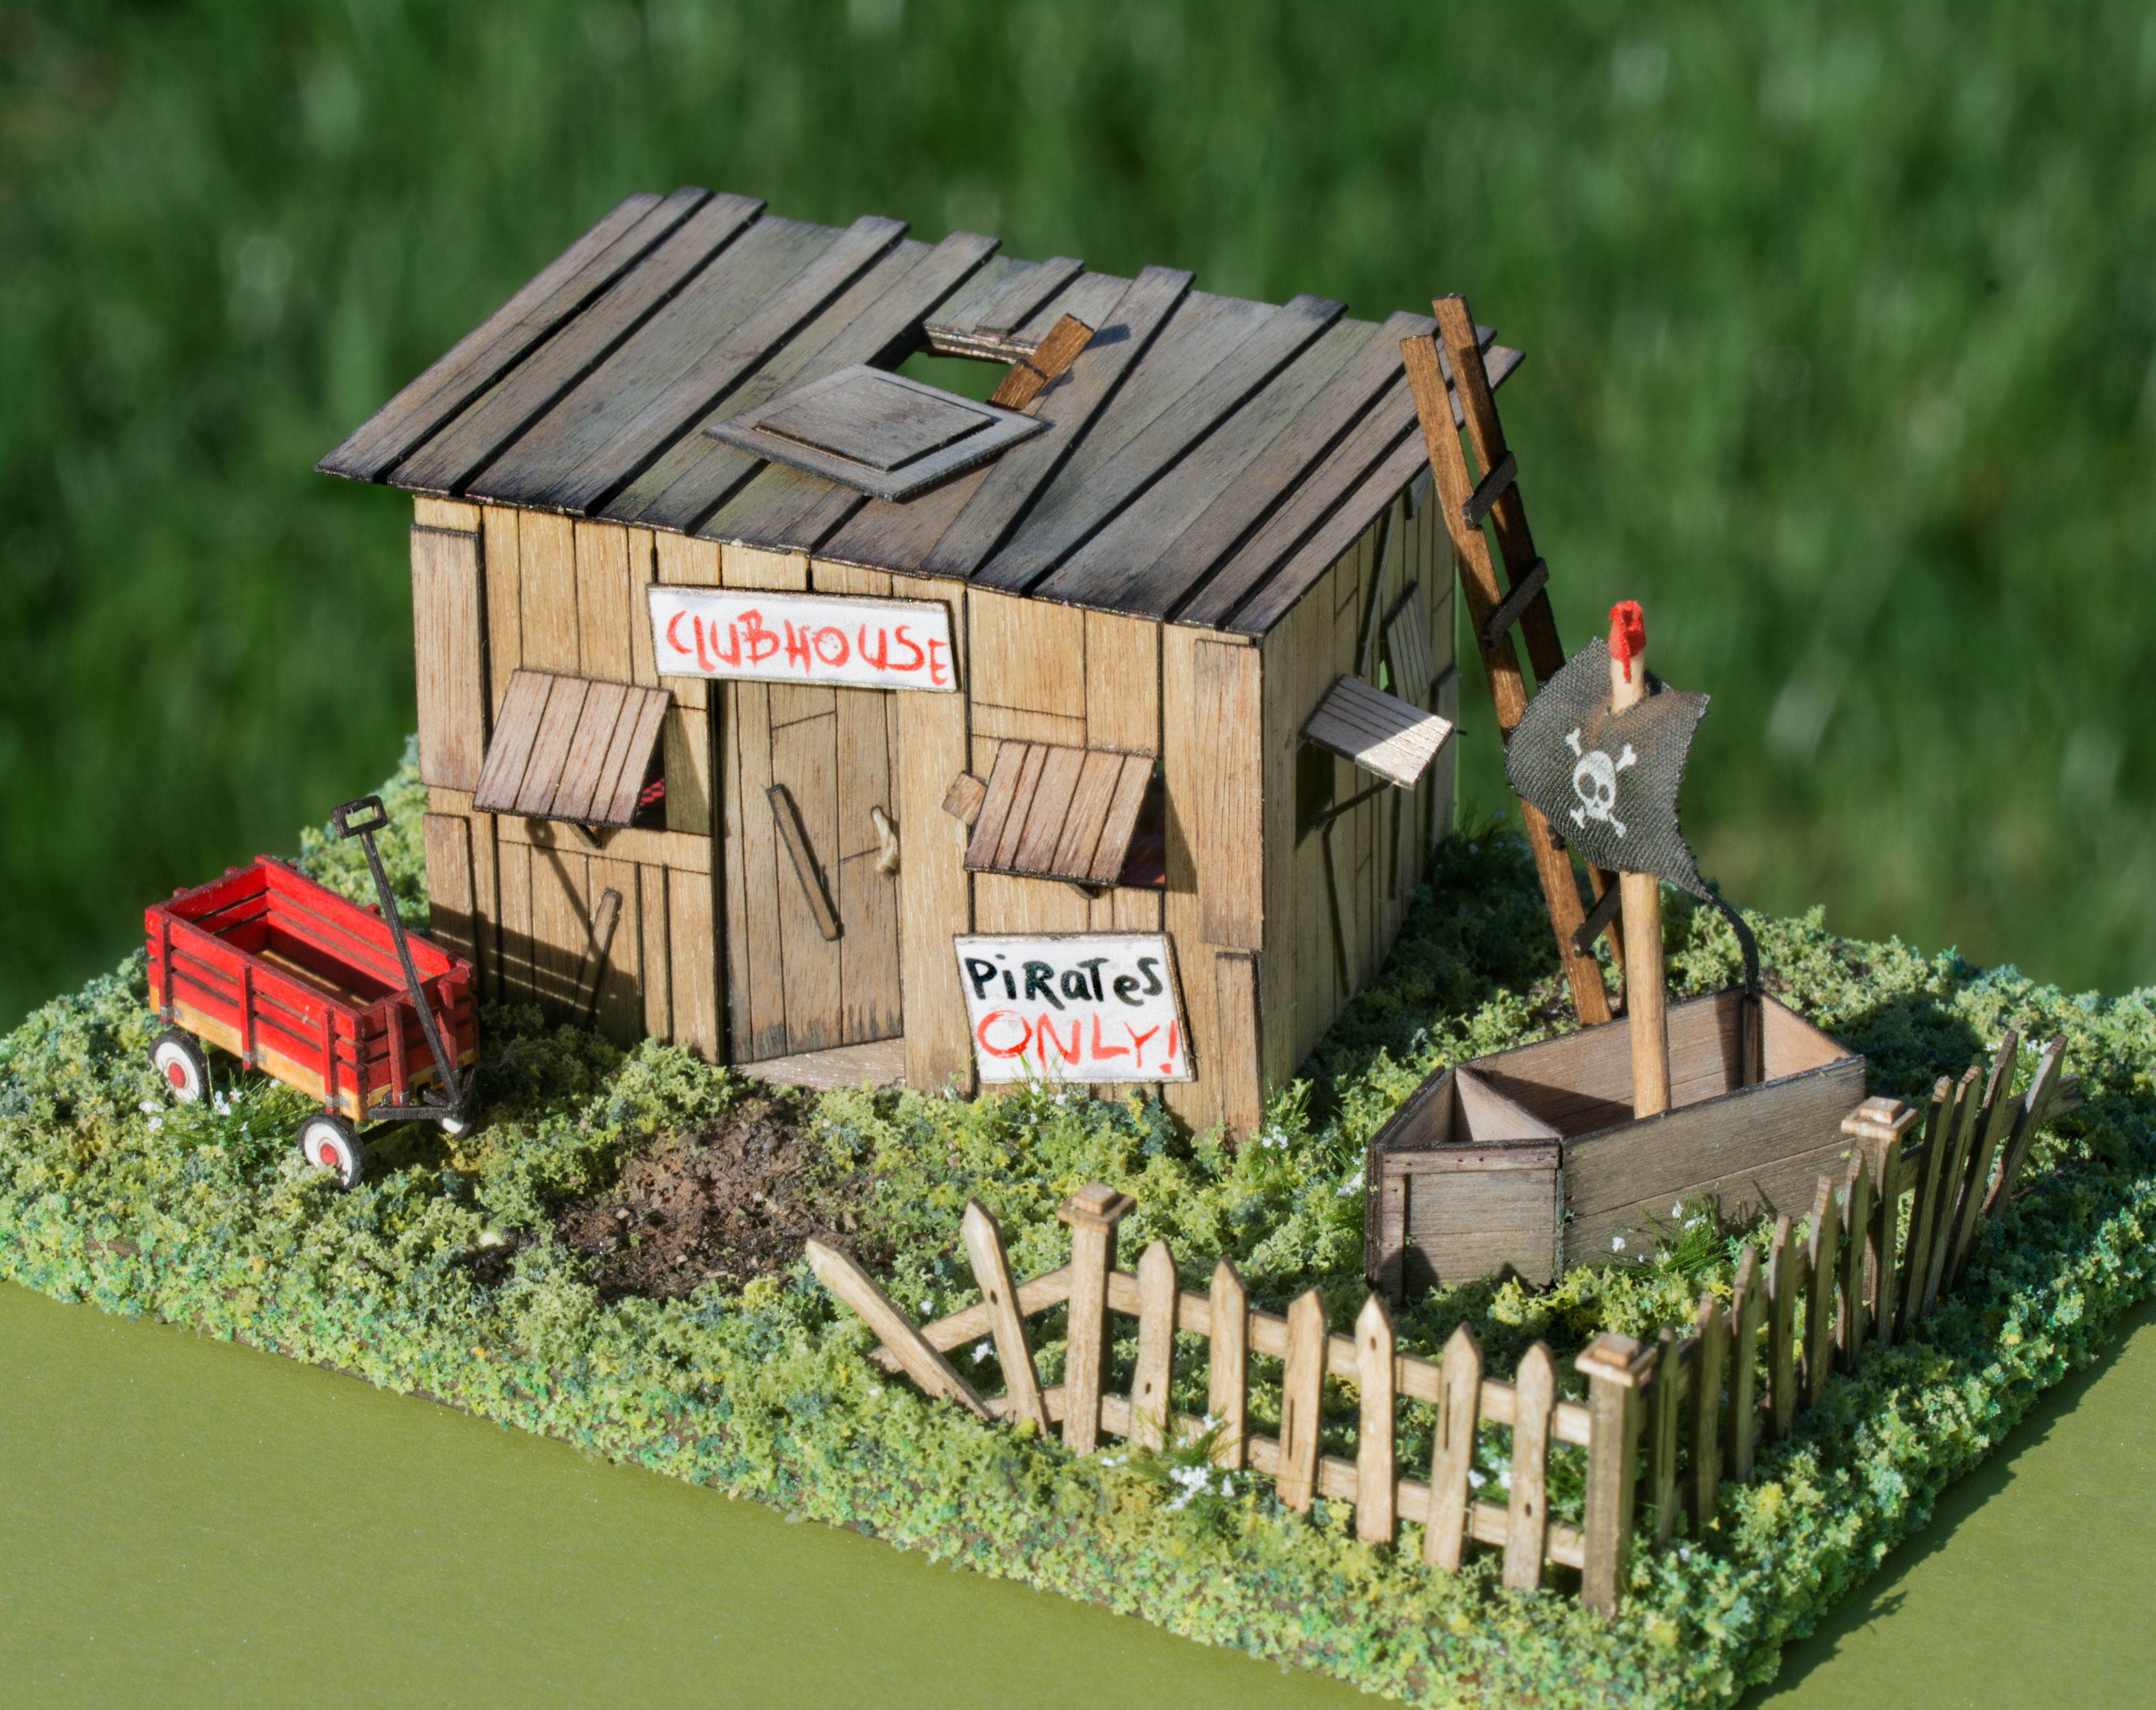 building and landscaping a 1/4 scale kids' clubhouse